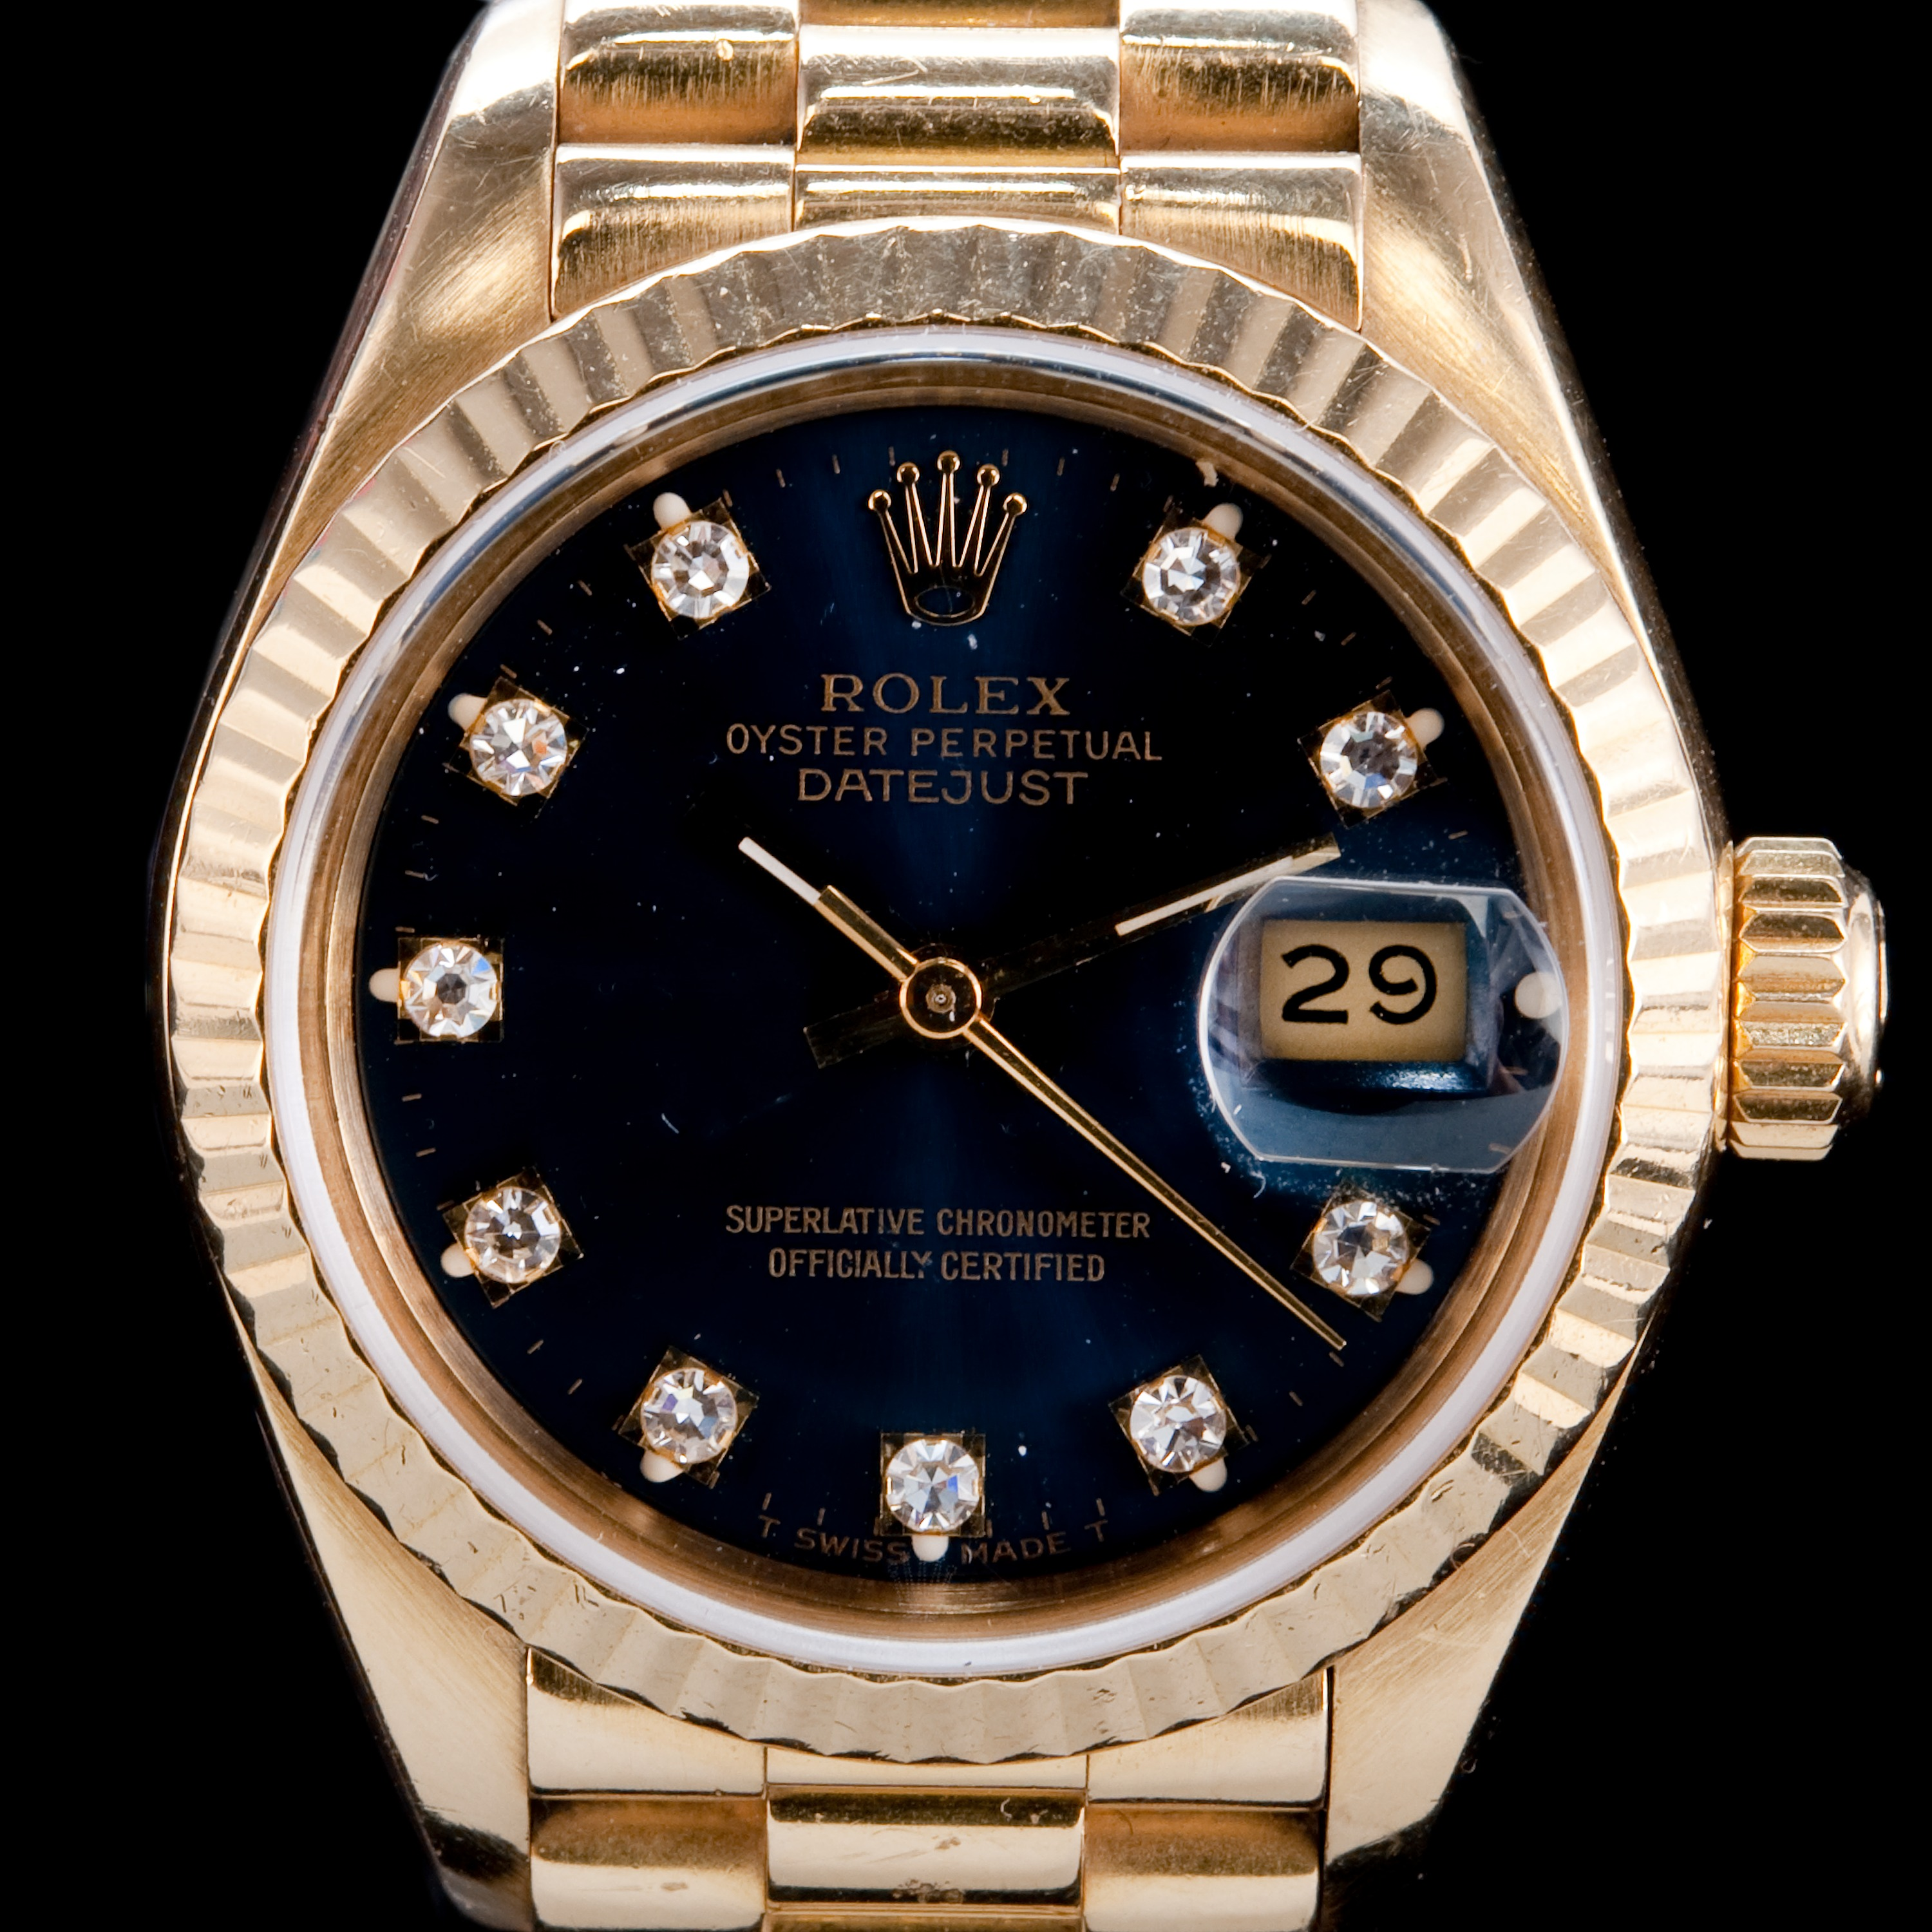 , Rolex oyster perpetual datejust